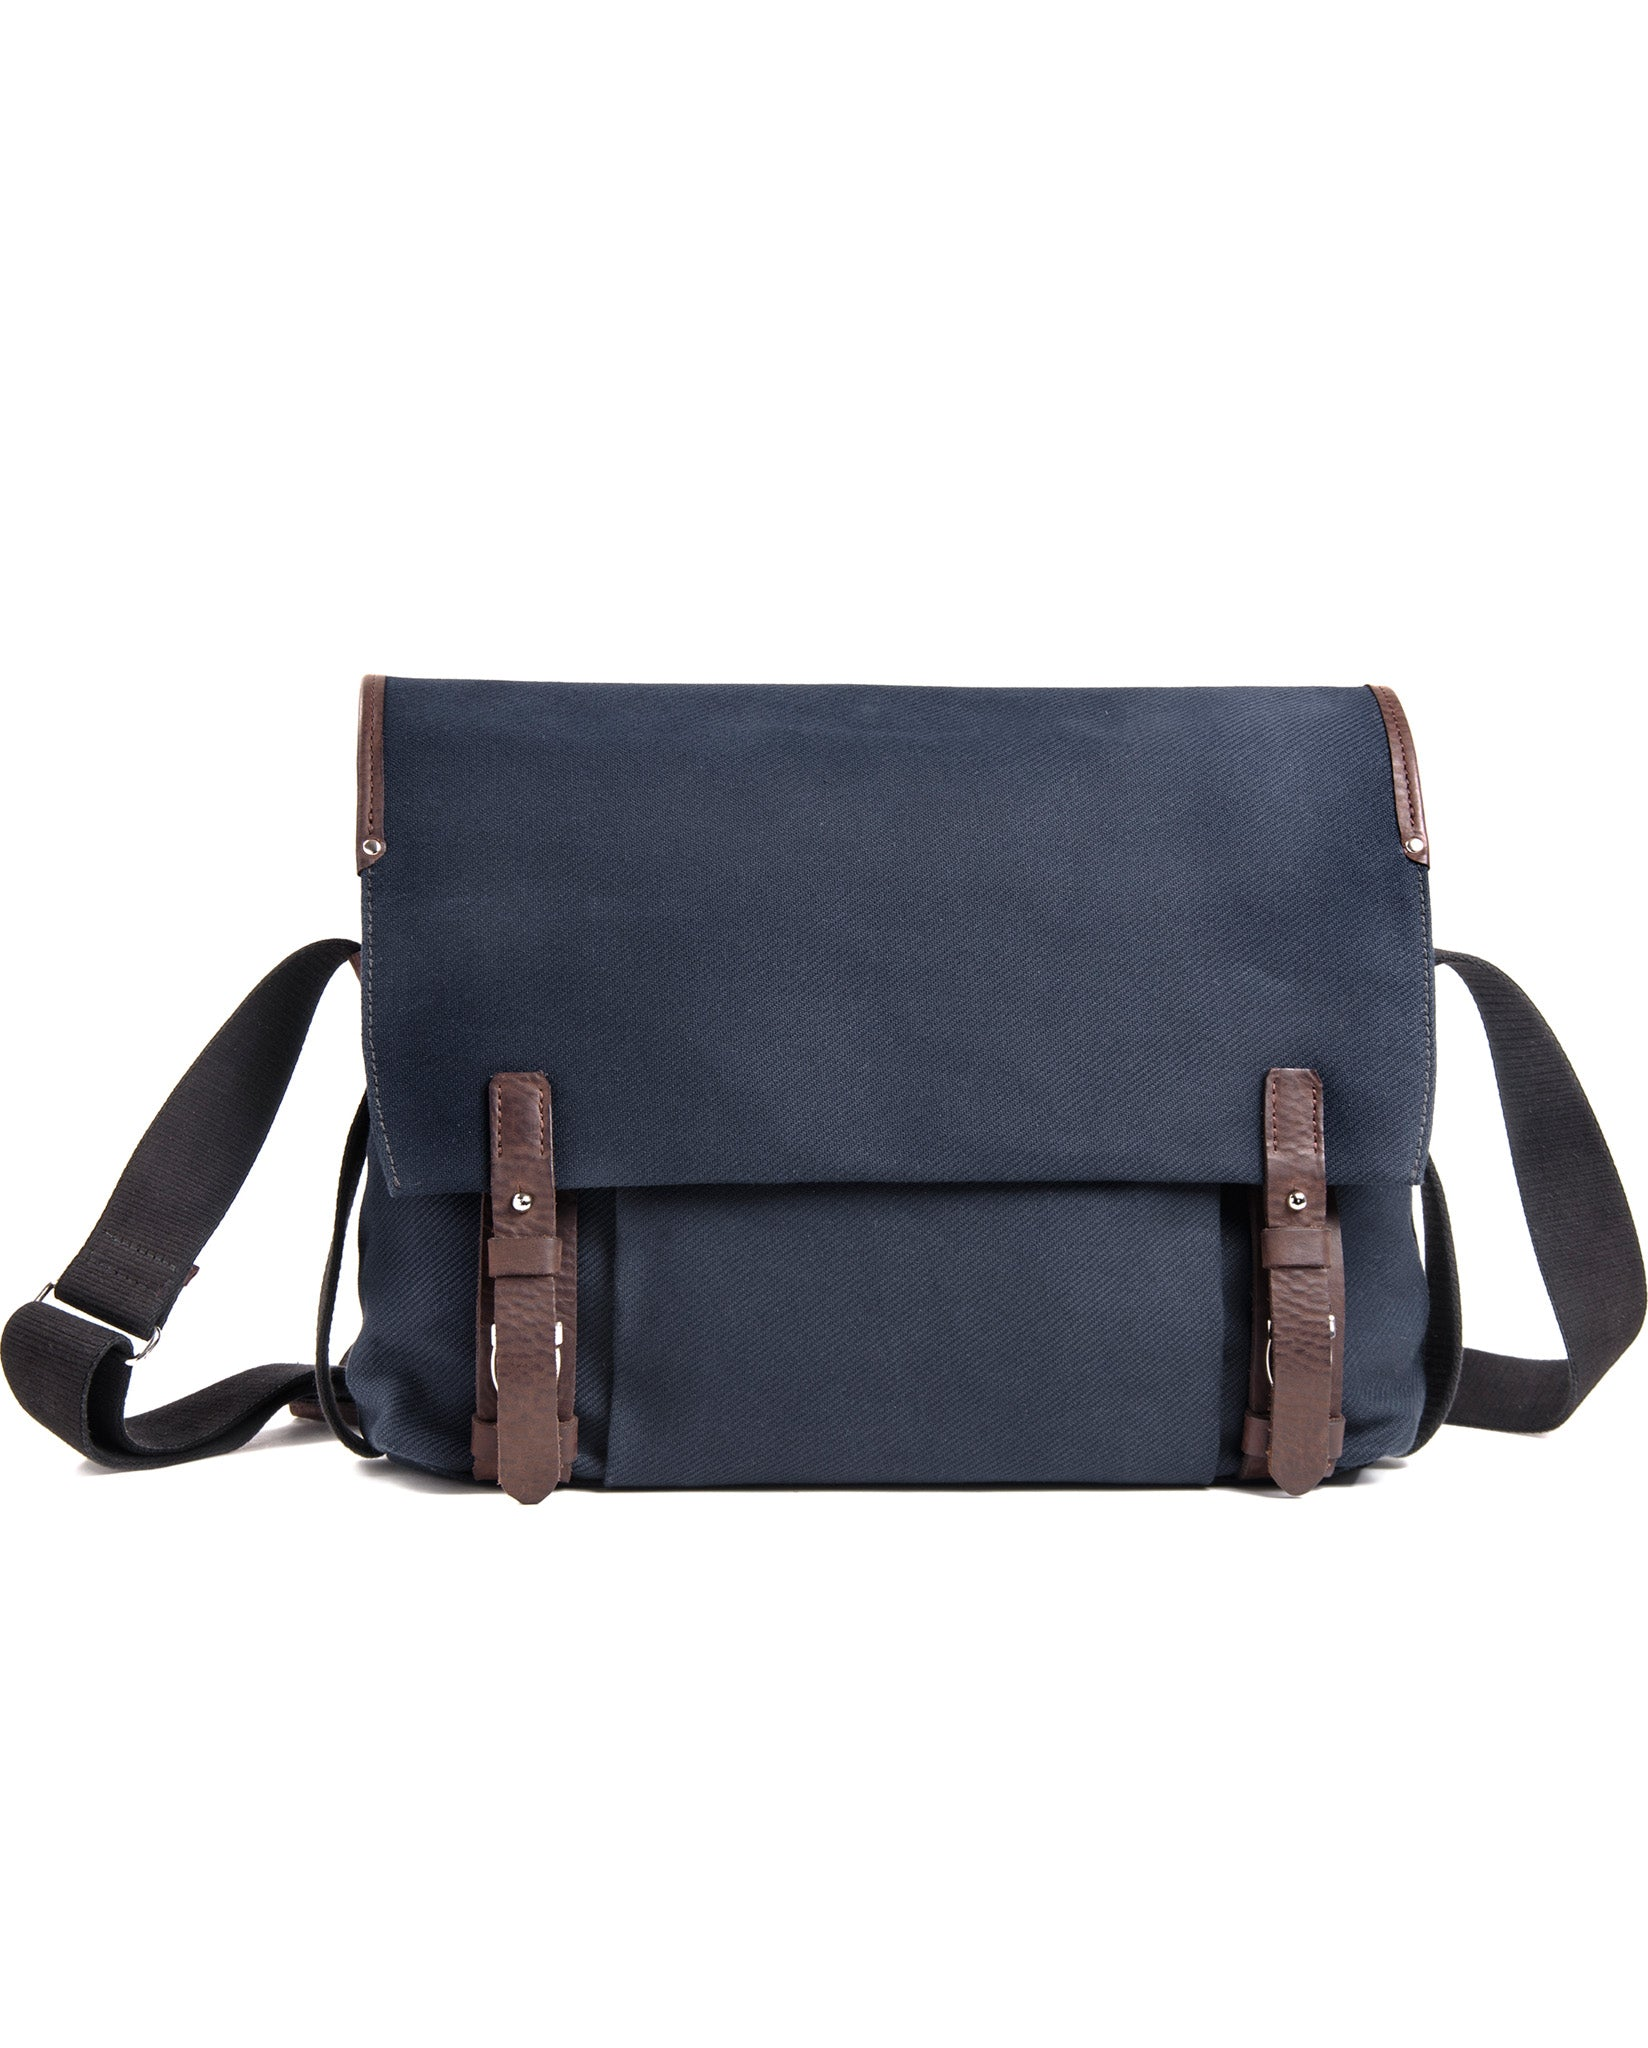 Leado Canvas Kuriertasche